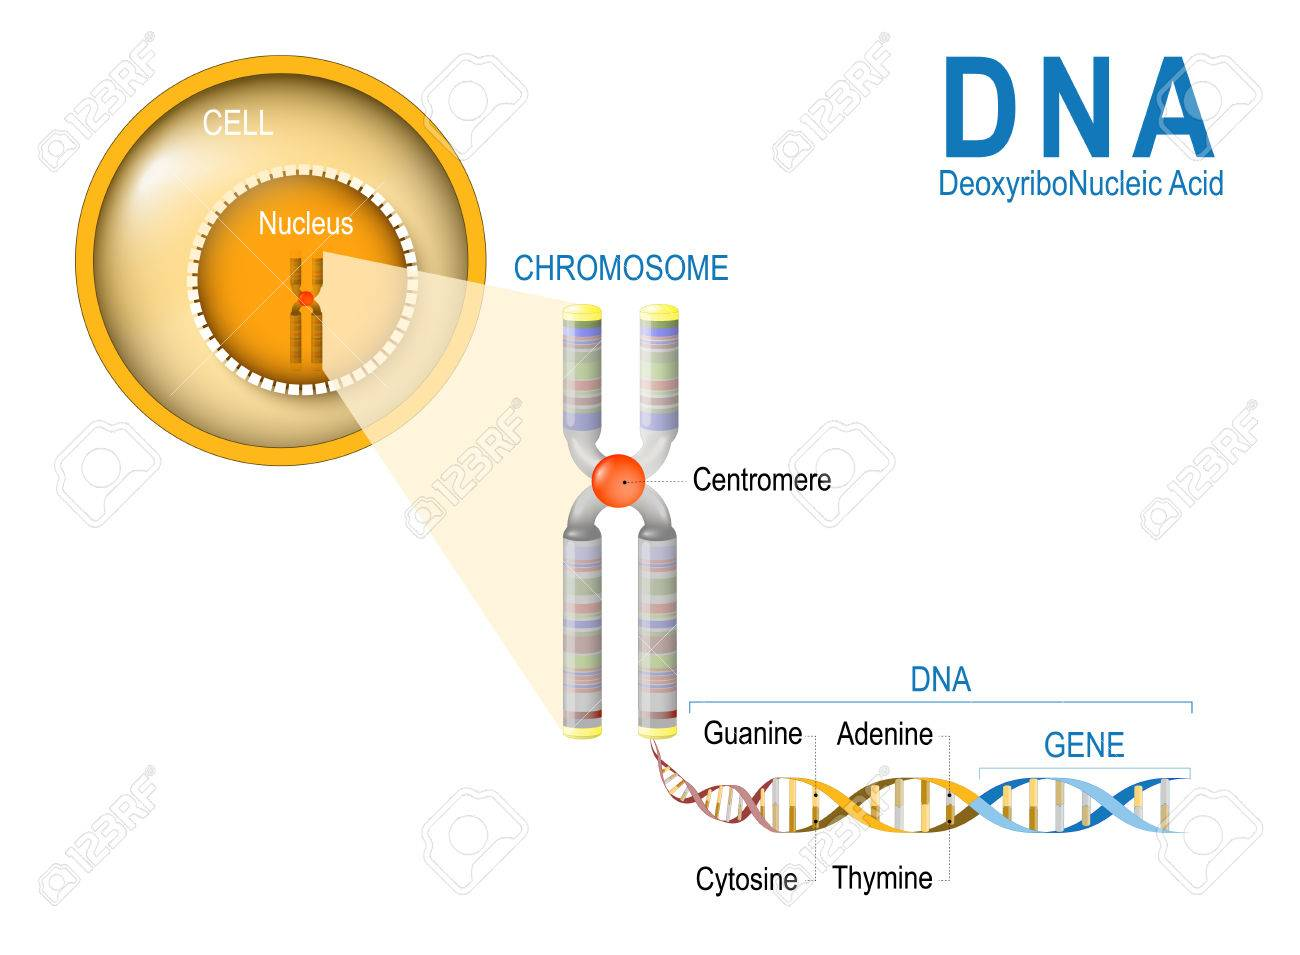 Cell chromosome dna and gene cell structure the dna molecule cell chromosome dna and gene cell structure the dna molecule is a ccuart Image collections